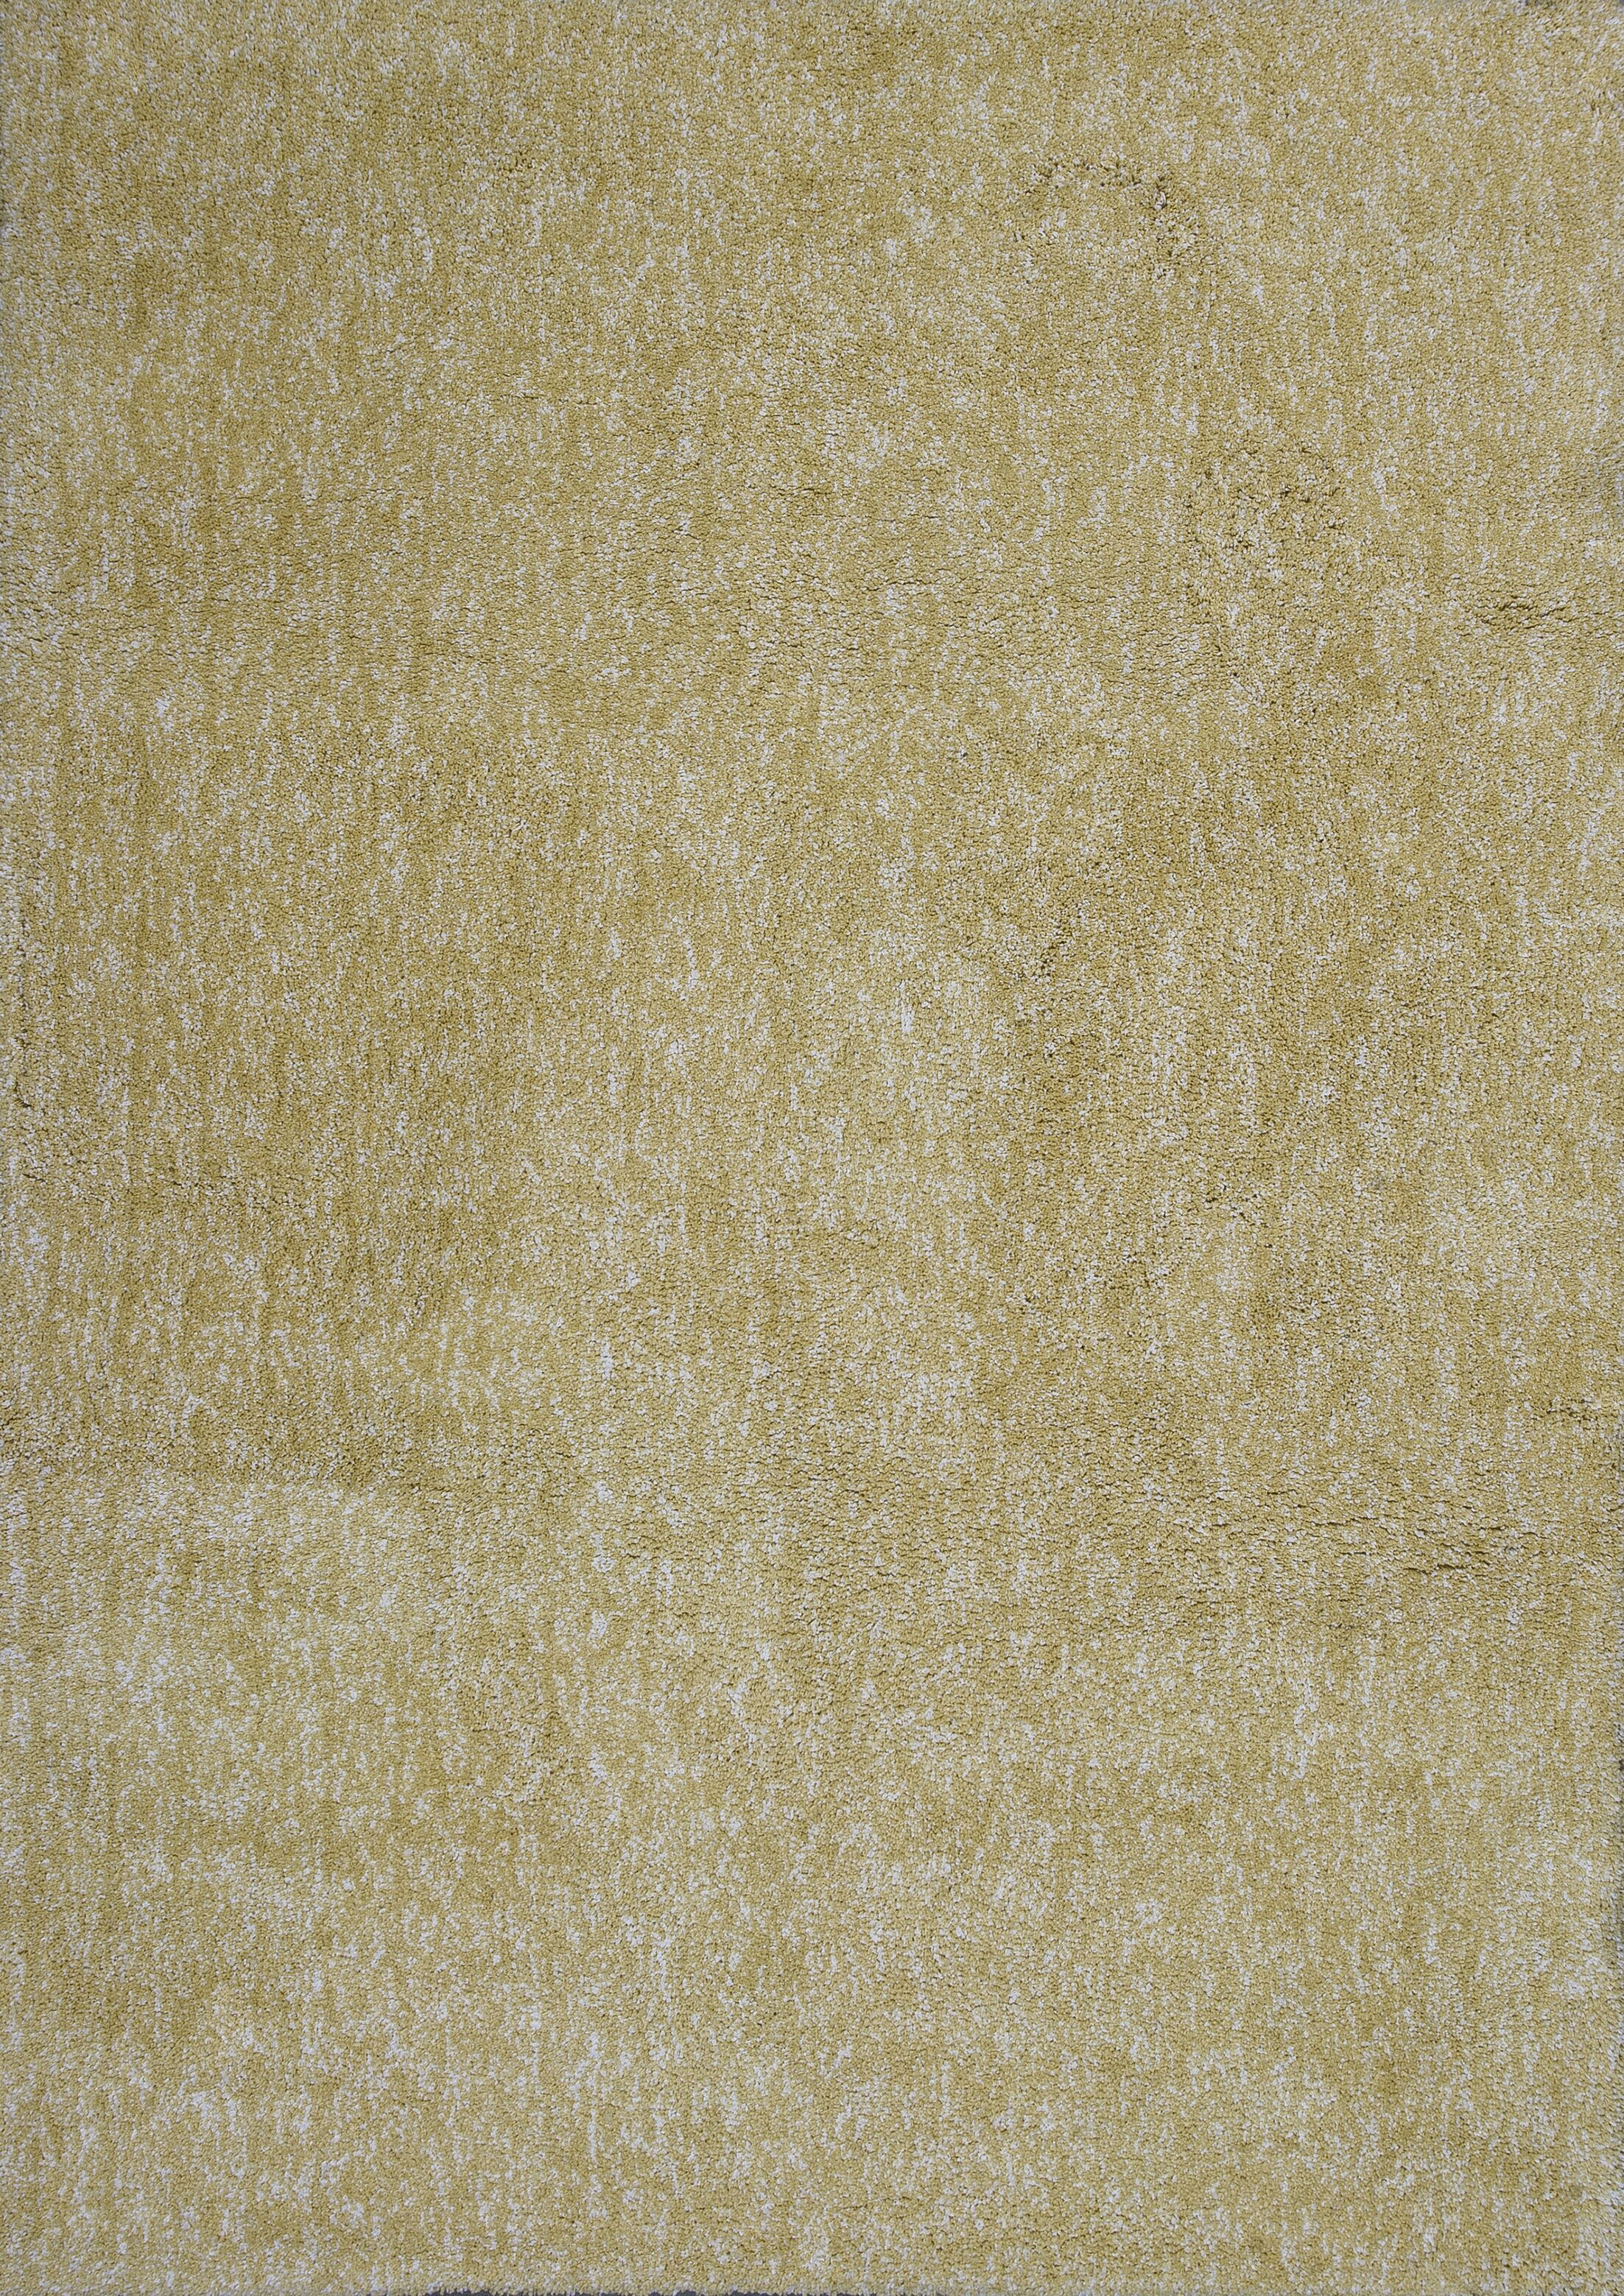 Bouvier Hand-Woven Yellow Area Rug Rug Size: Rectangle 3'3